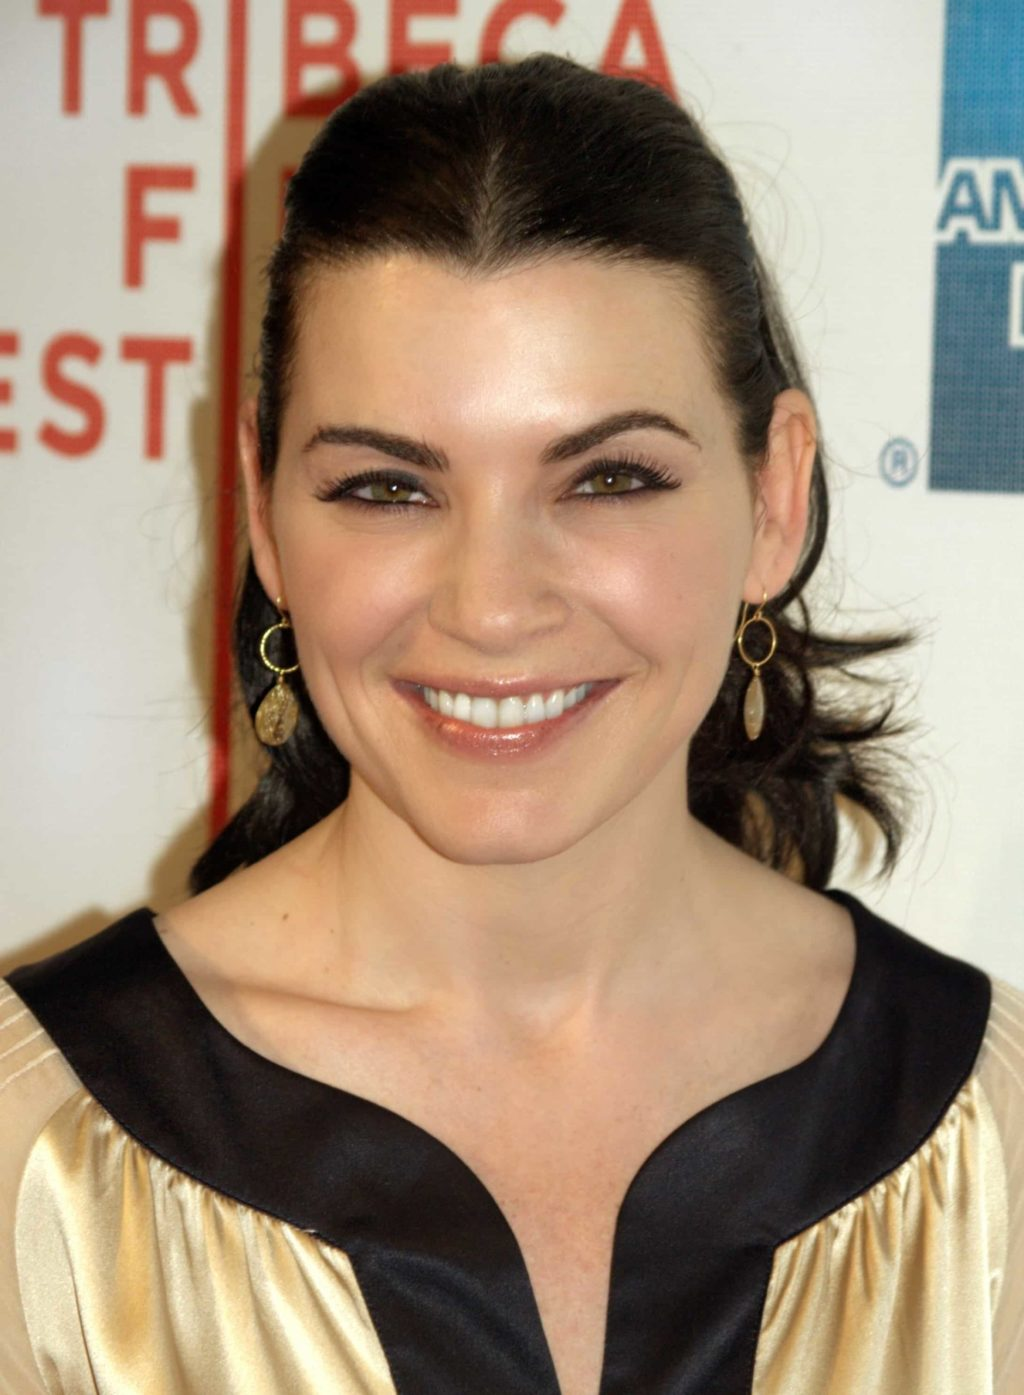 Julianna_Margulies